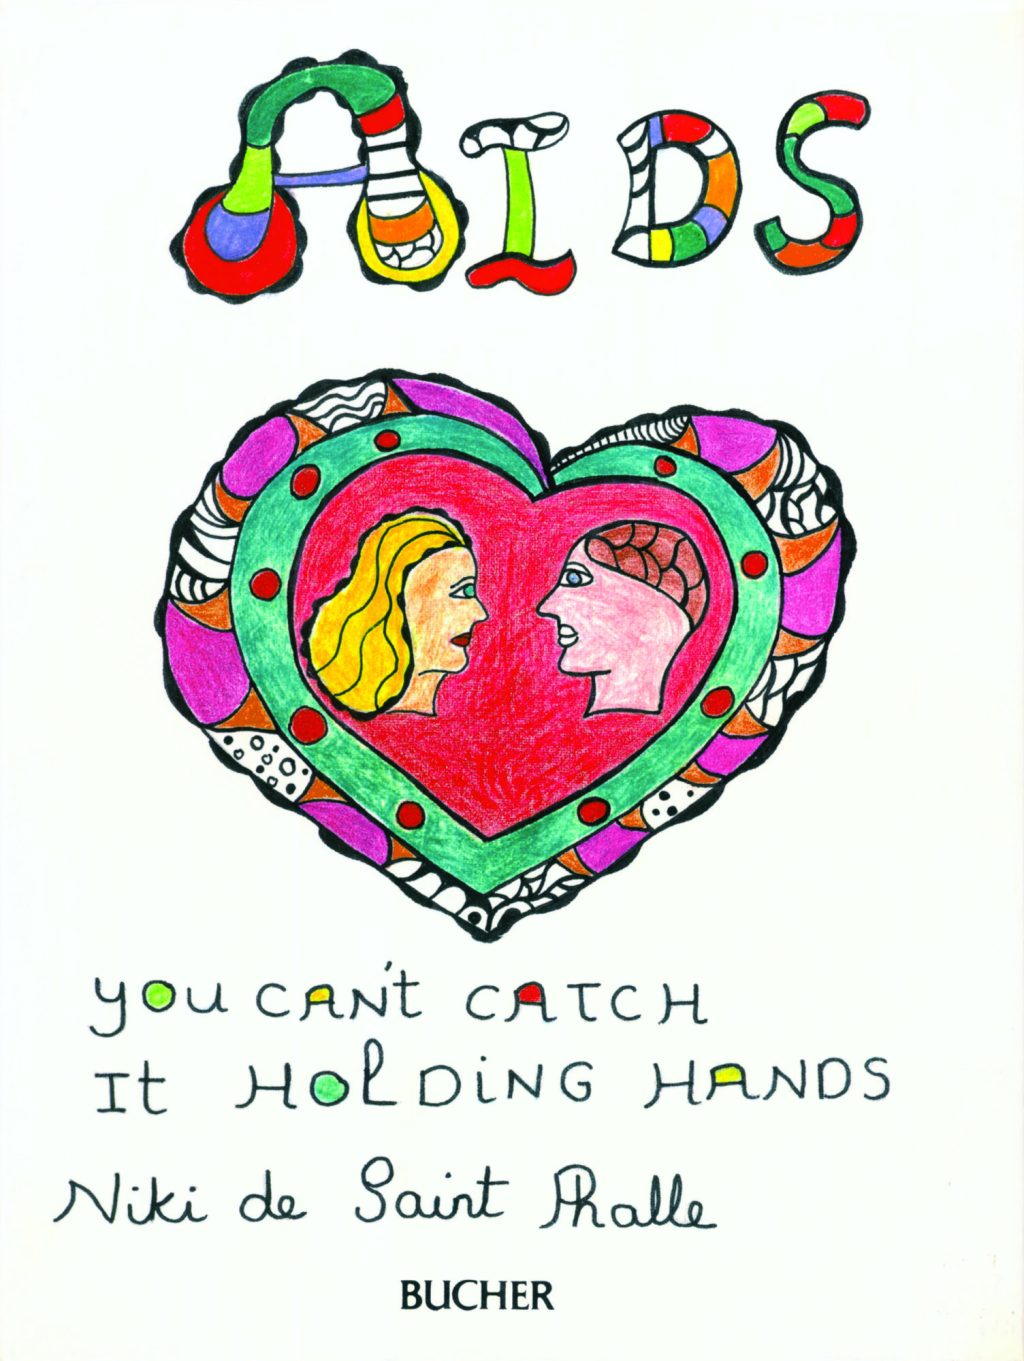 Niki de Saint Phalle, book cover for 'AIDS, you can't catch it holding hands', 1986.